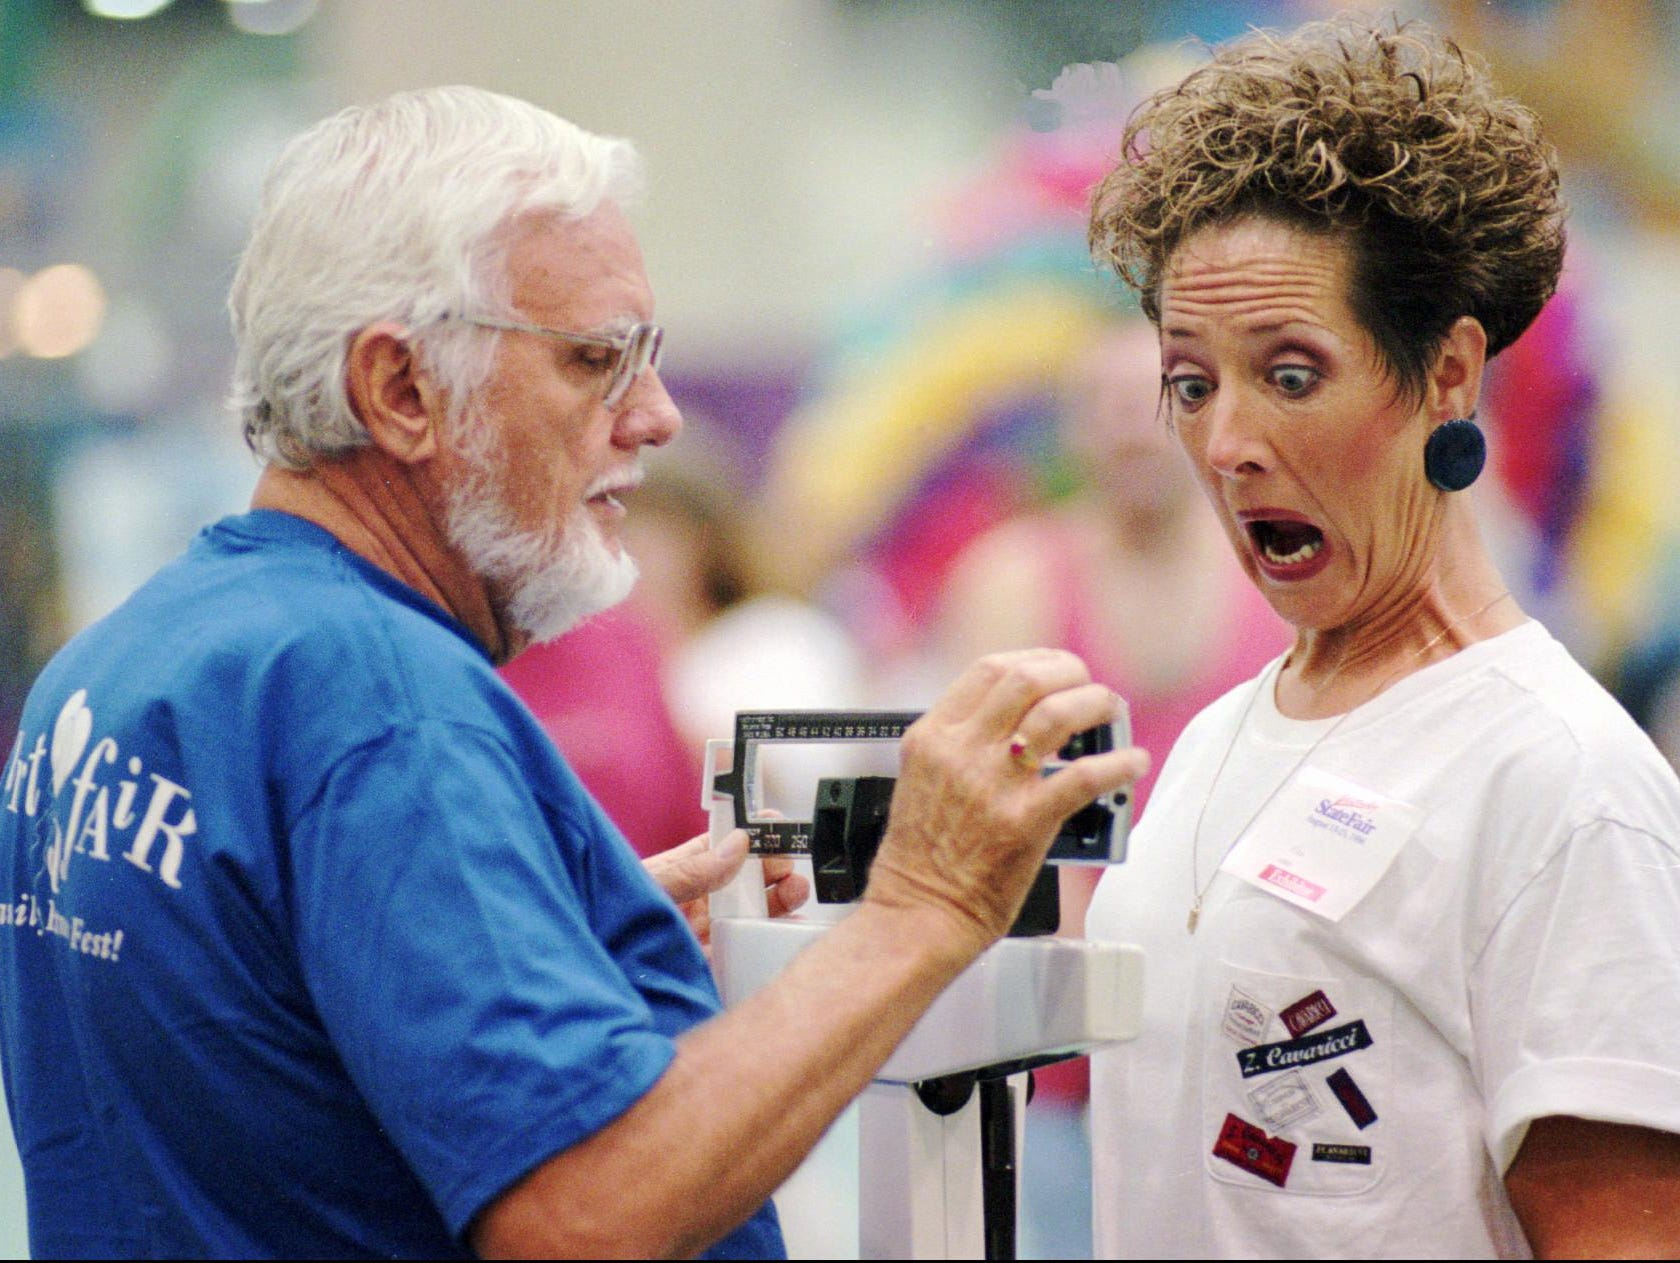 Karen Price reacted as Mike Willman took her weight at the Kentucky State Fair last week. Price, of Clearfield, Utah, was having a fitness checkup at a heart-health booth sponsored by Jewish Hospital HealthCare Services. Willman, who participates in the hospital's cardiac rehab program, also volunteers there three days a week. For the fair, he was among 1,111 volunteers from the community recruited to operate the booth. Volunteers included hospital employees, Black Achievers and employees of BellSouth, General Electric, Providian and United Distillers. Hospital officials said Monday that 39,000 people received free checkups during the 11-day fair.-